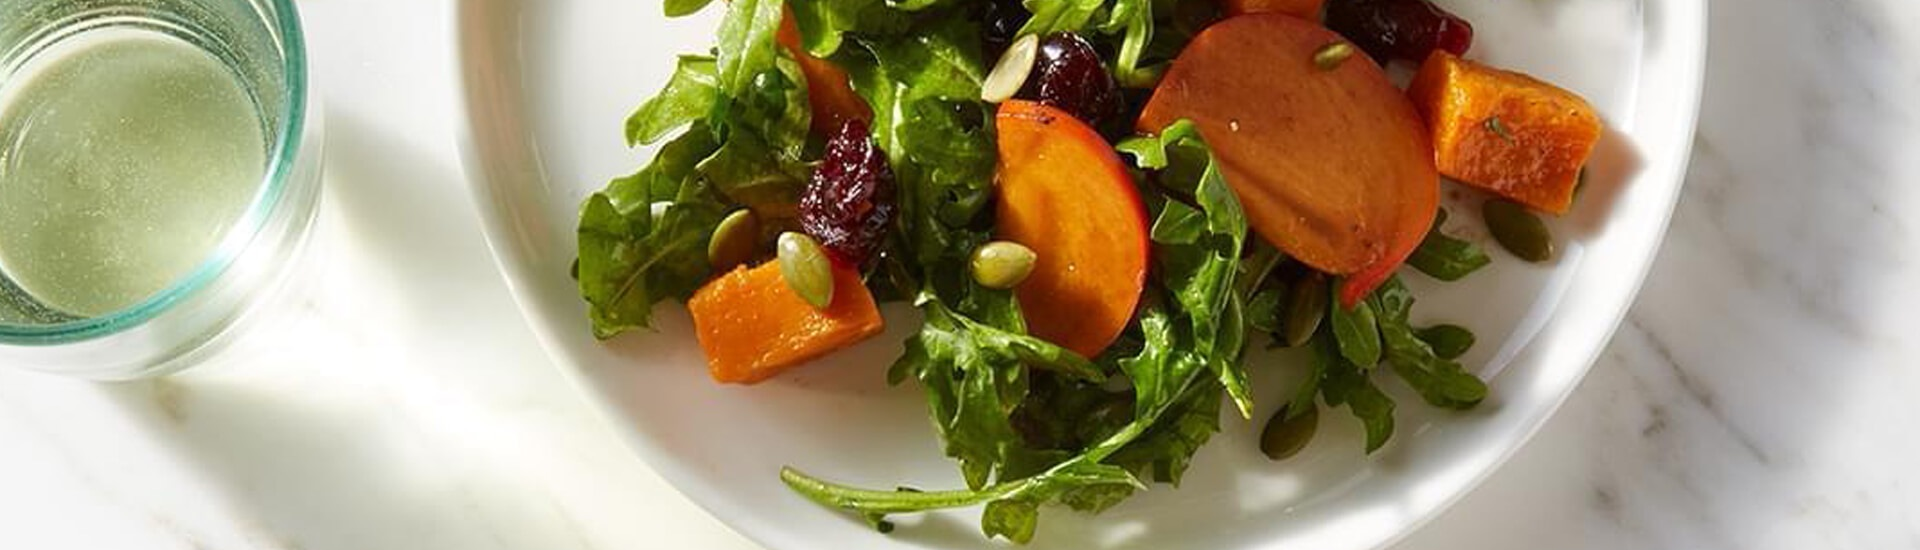 Winter Salad with Cranberry, Butternut Squash and Persimmons